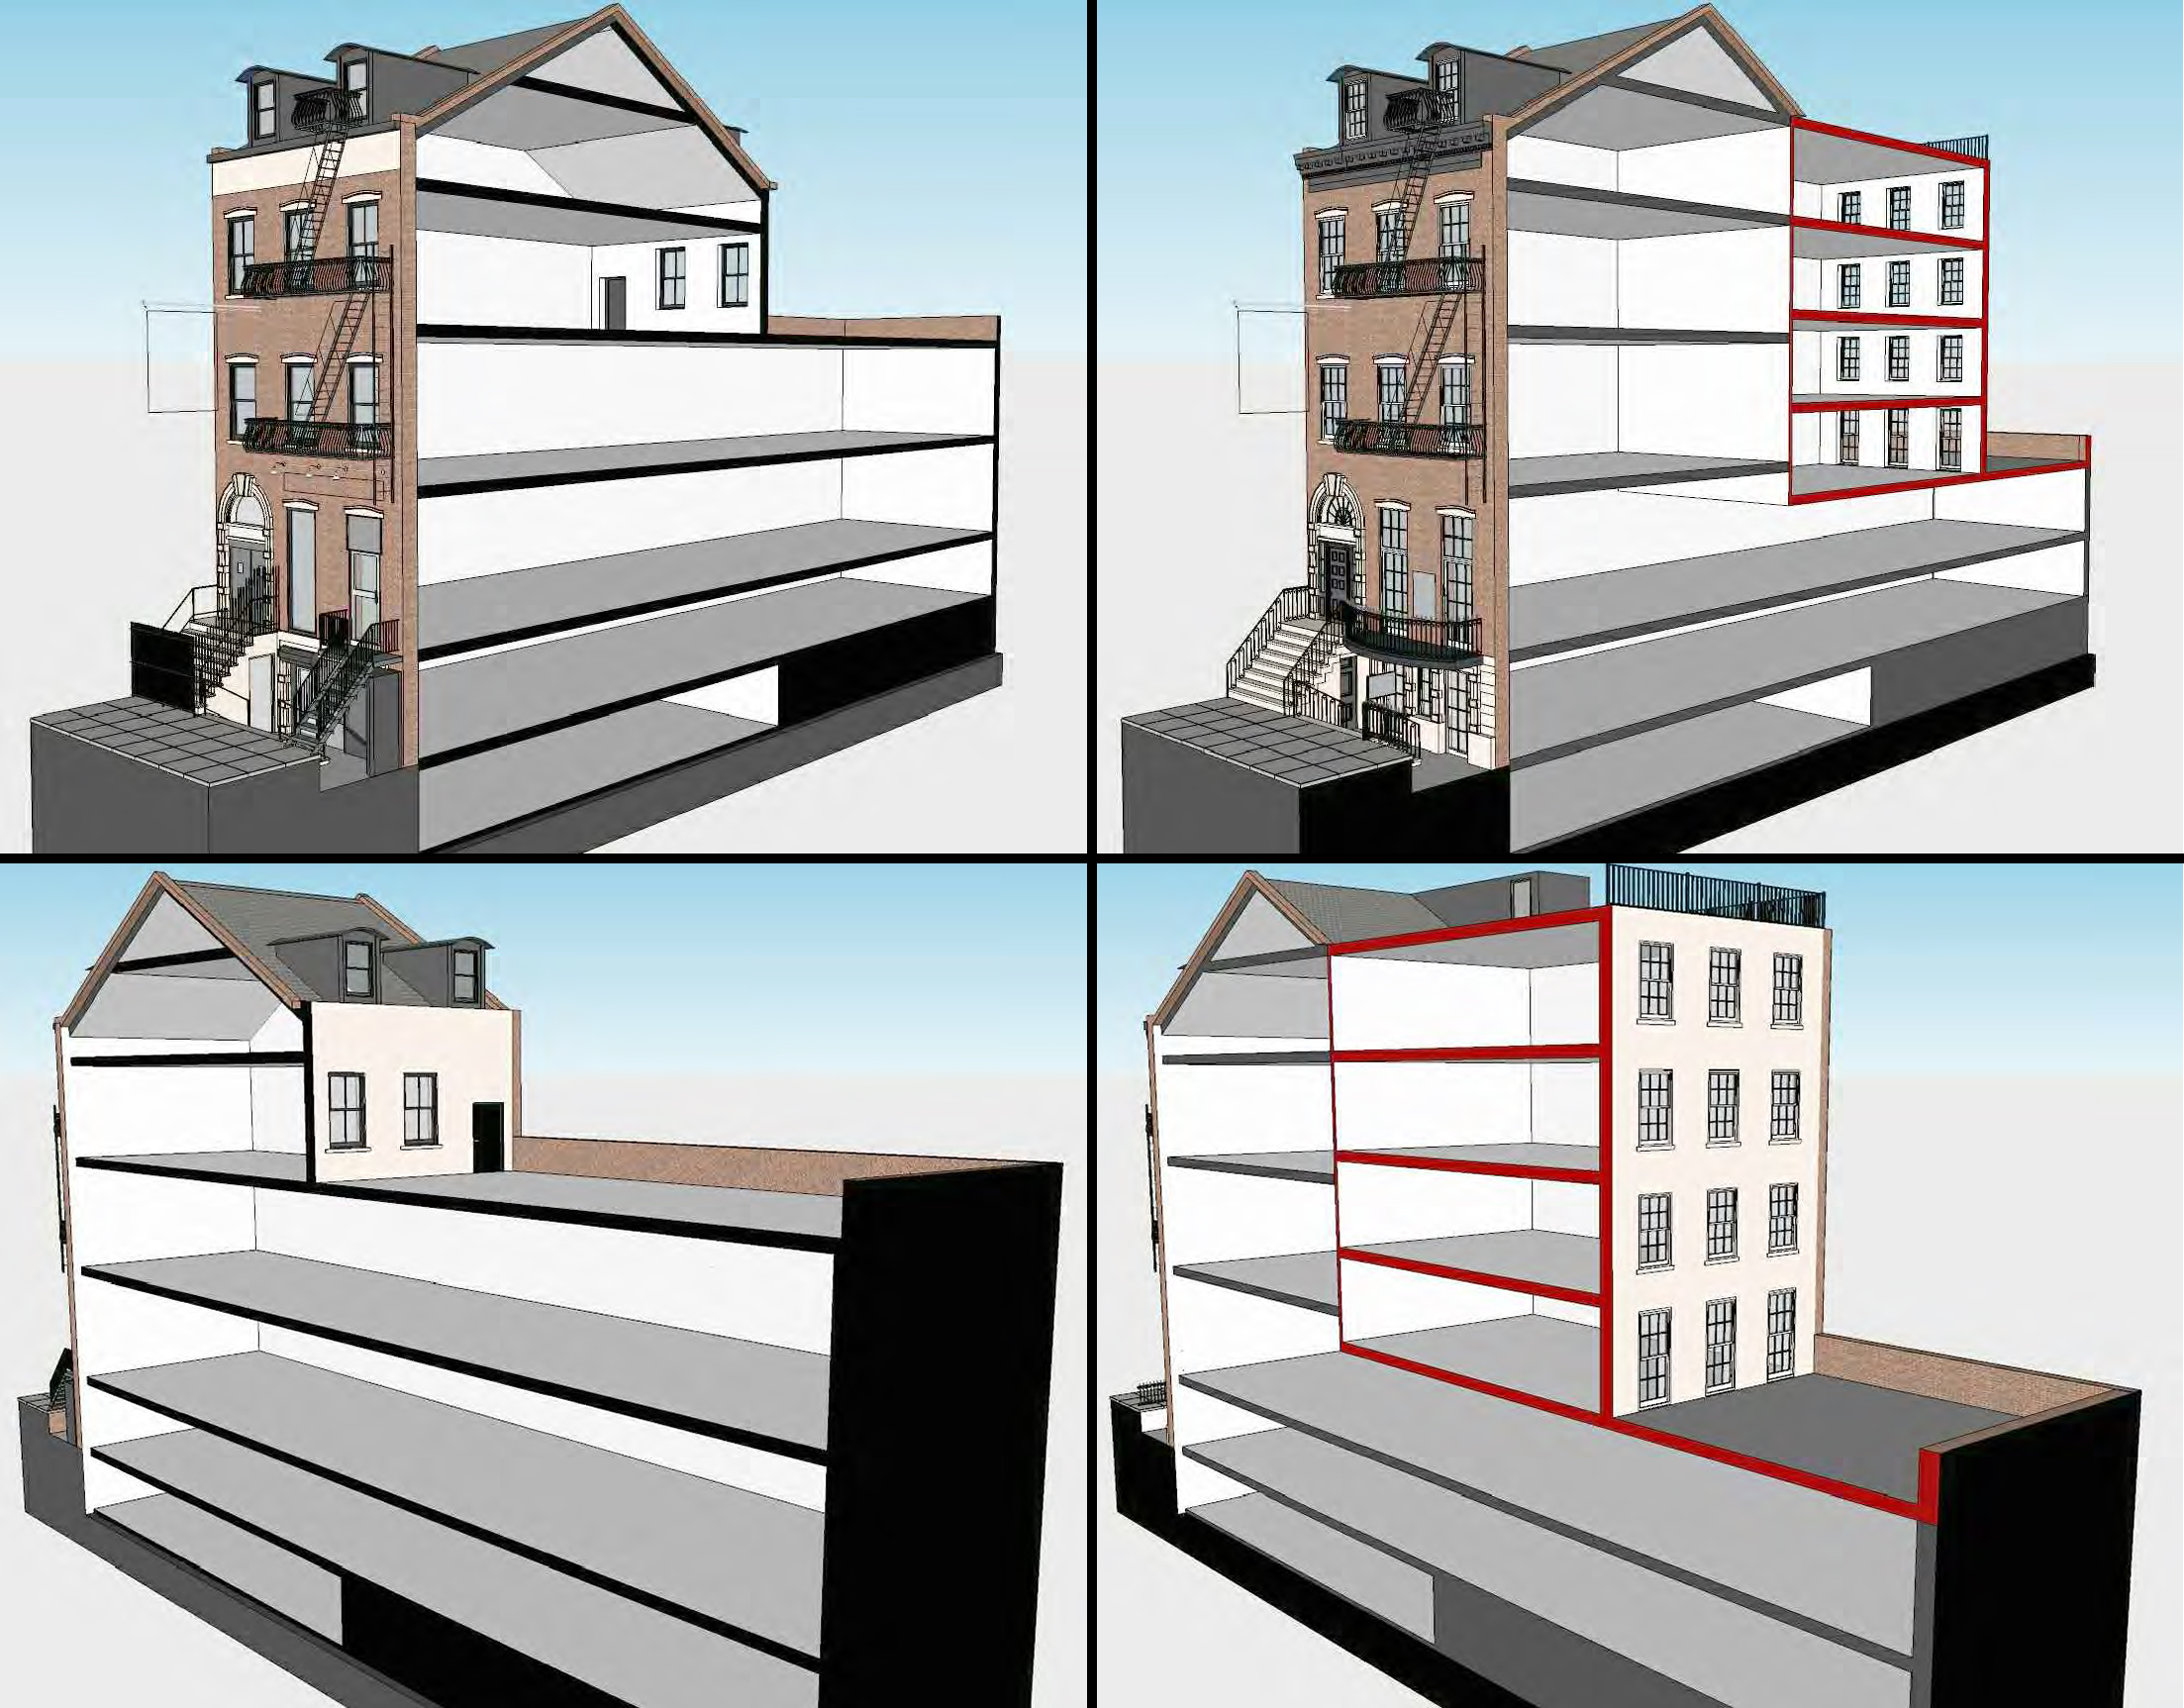 Sectioned renderings of the Hamilton-Holly House at 4 St. Mark's Place, existing and proposed